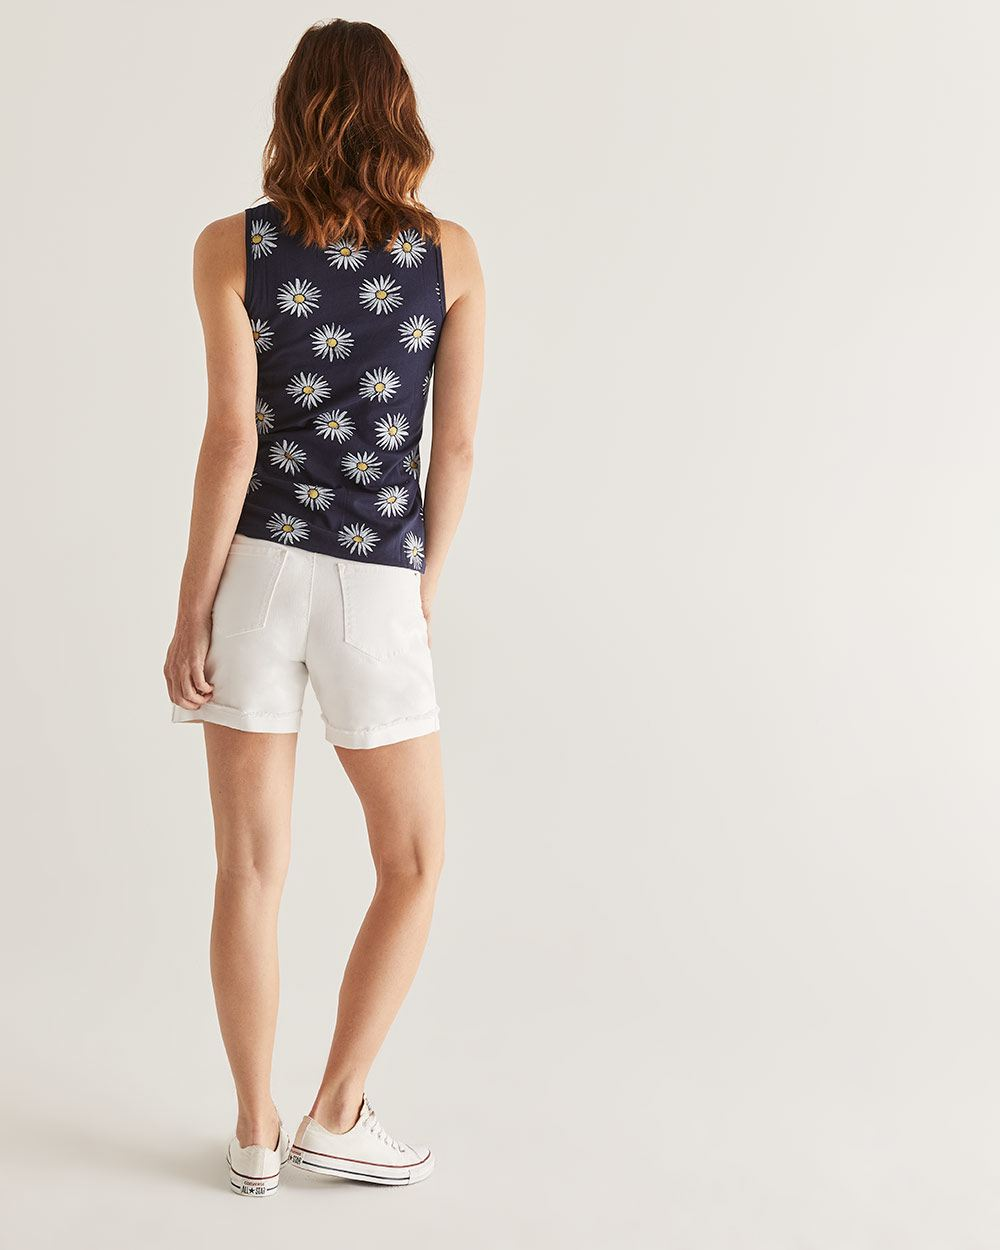 R Essential Cotton Printed Tank Top